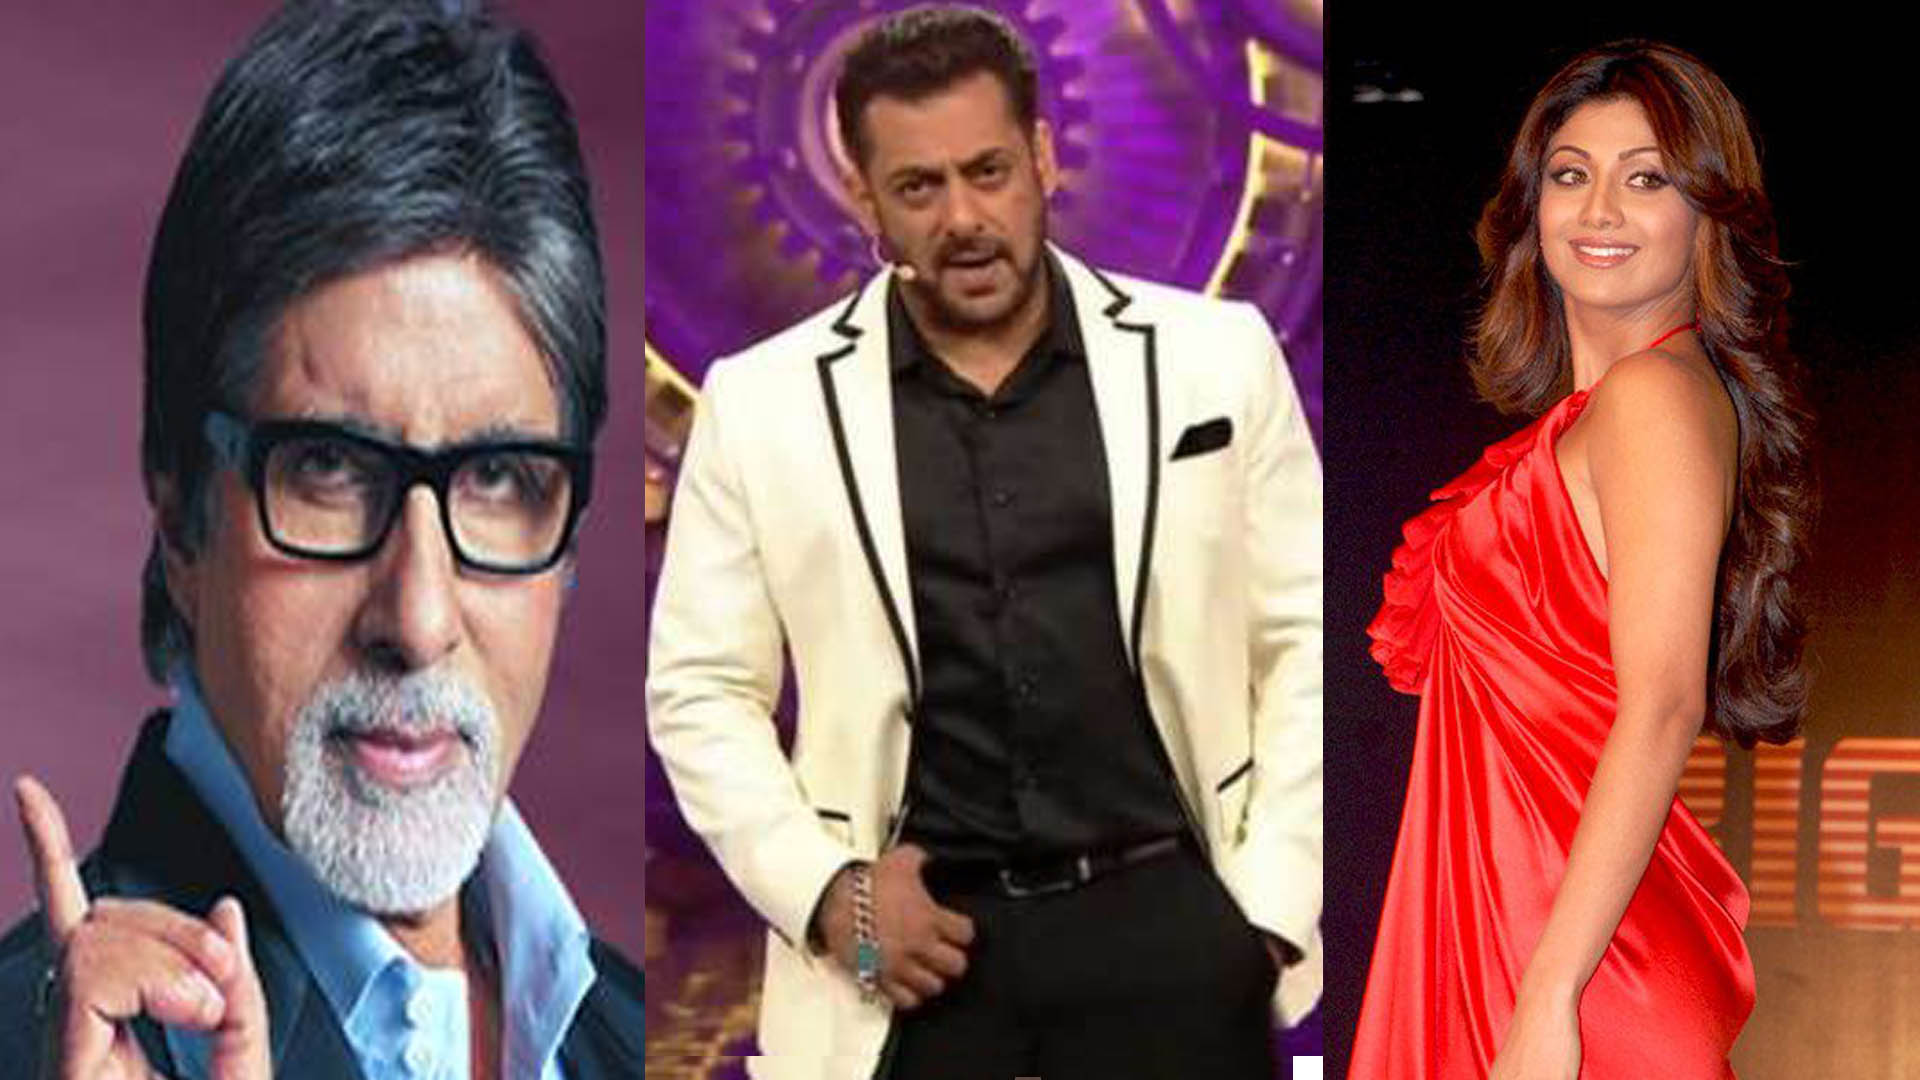 Which season of Bigg Boss got the highest TRPs   Find out the most successful Bigg Boss season